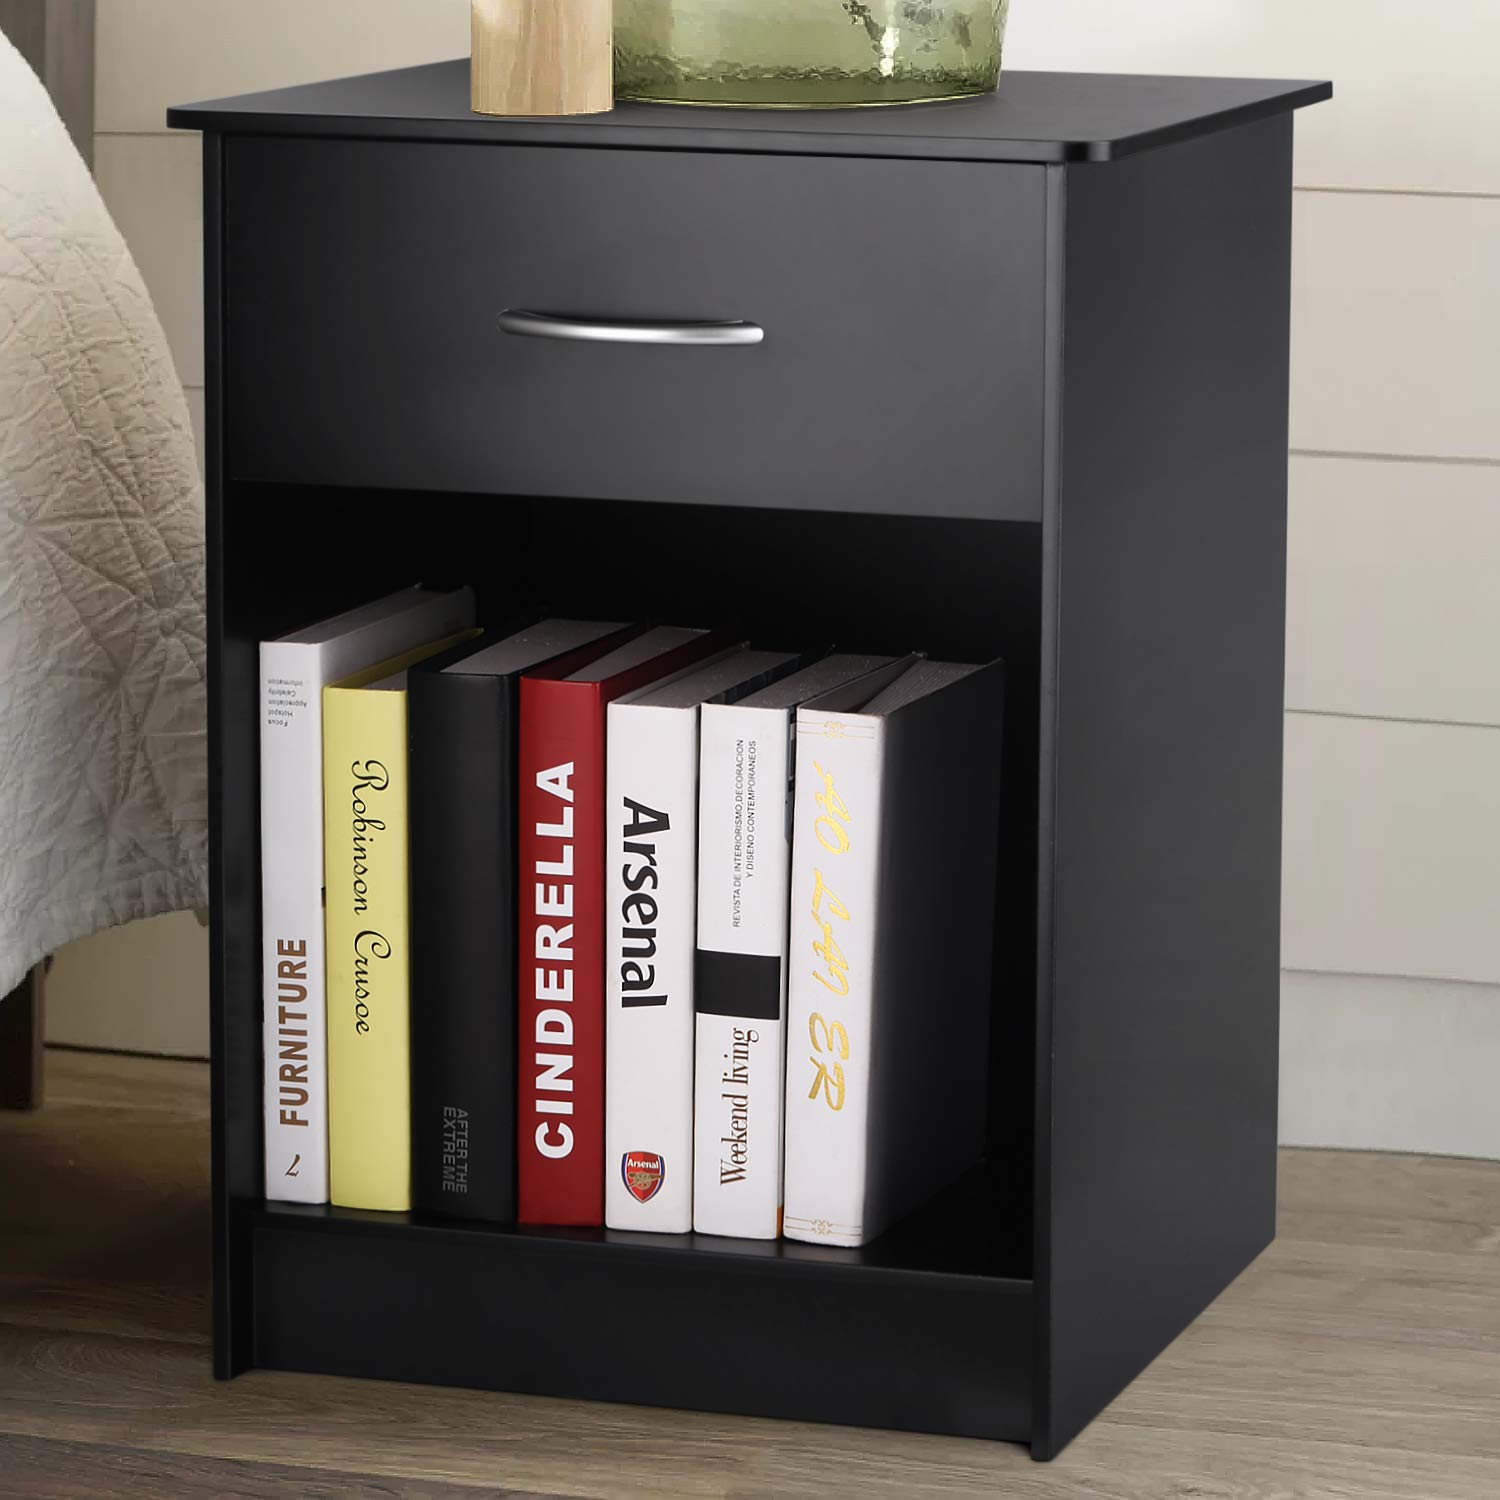 INTEY Nightstand with Drawer and Open Storage Shelf, Side End Table for Bedroom Living Room, Black by INTEY